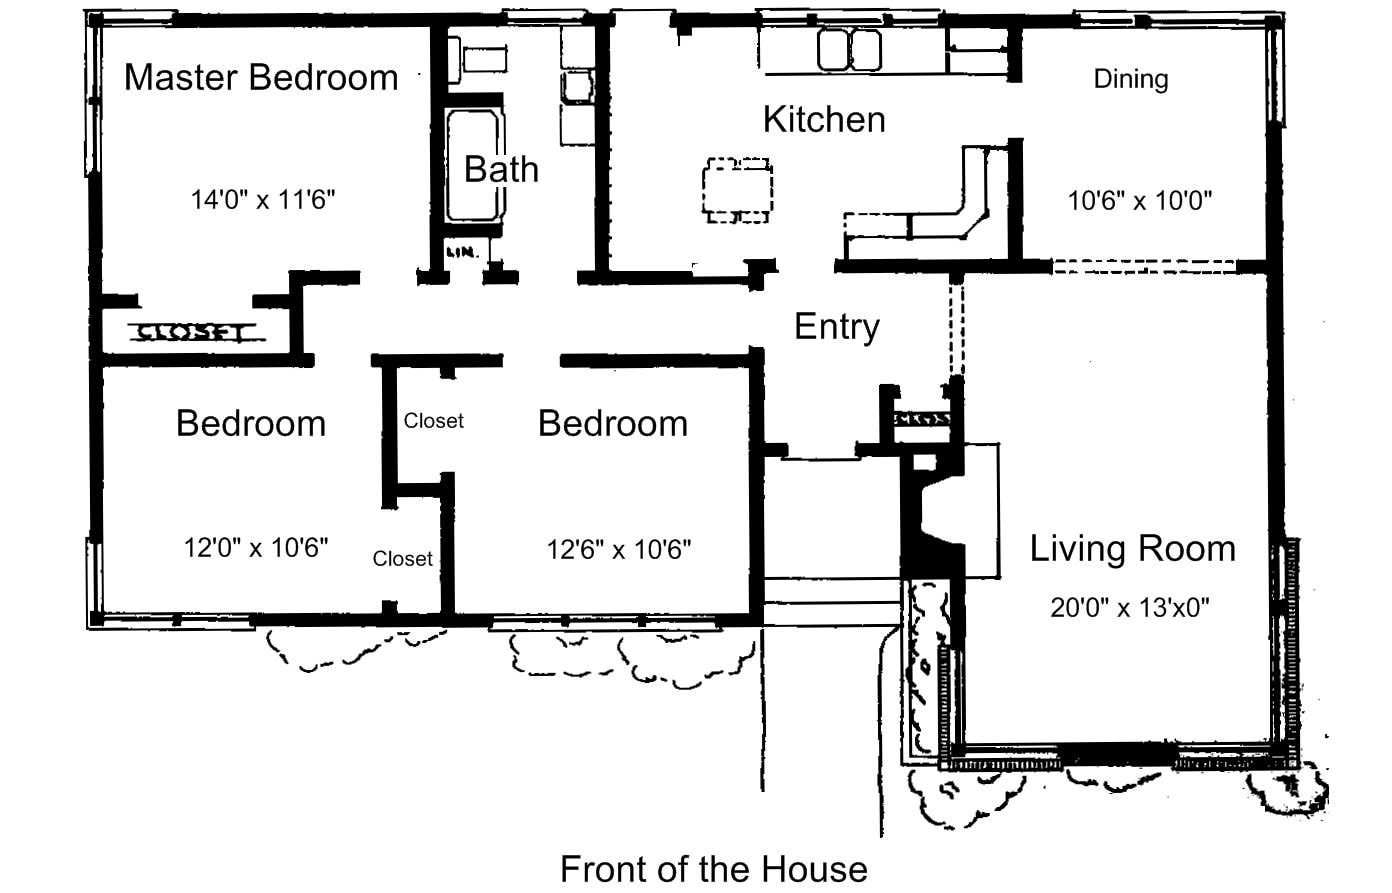 Small House Blueprints small house floor plans small home house plan Free Floor Plans For Small Houses